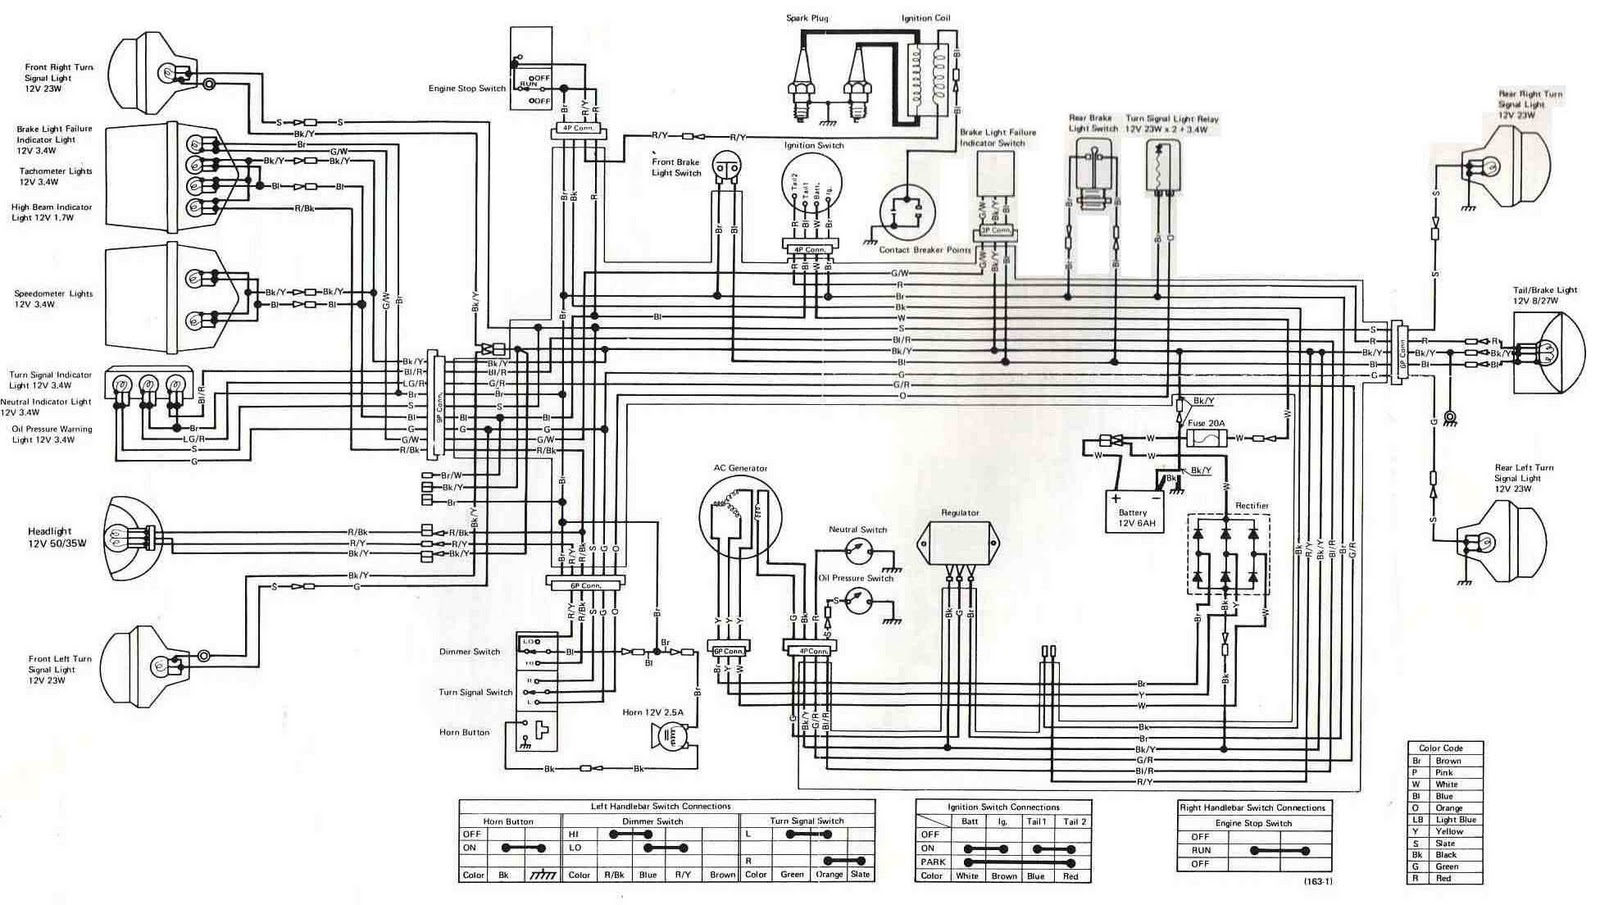 Kawasaki+KZ400+1975+Electrical+Wiring+Diagram kawasaki wiring diagram free toyota wiring diagrams \u2022 wiring kawasaki mule 600 wiring diagram at beritabola.co